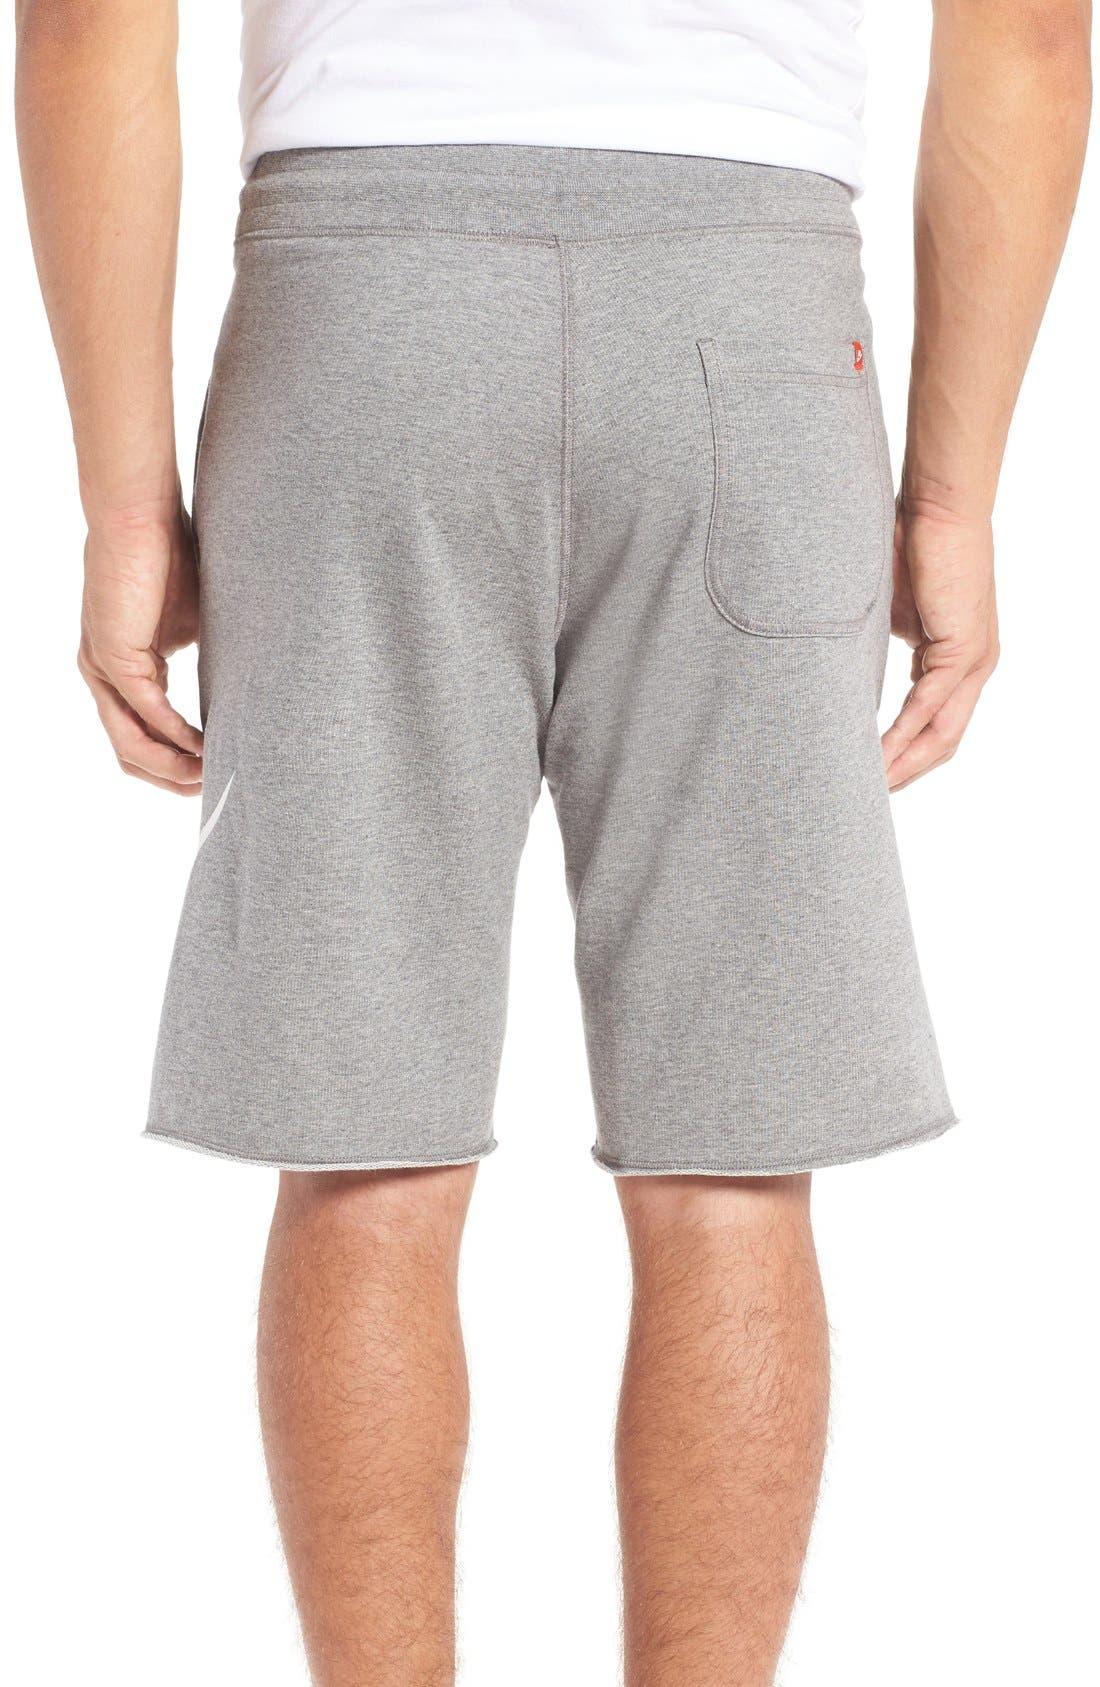 'NSW' Logo French Terry Shorts,                             Alternate thumbnail 5, color,                             CARBON HEATHER/ WHITE